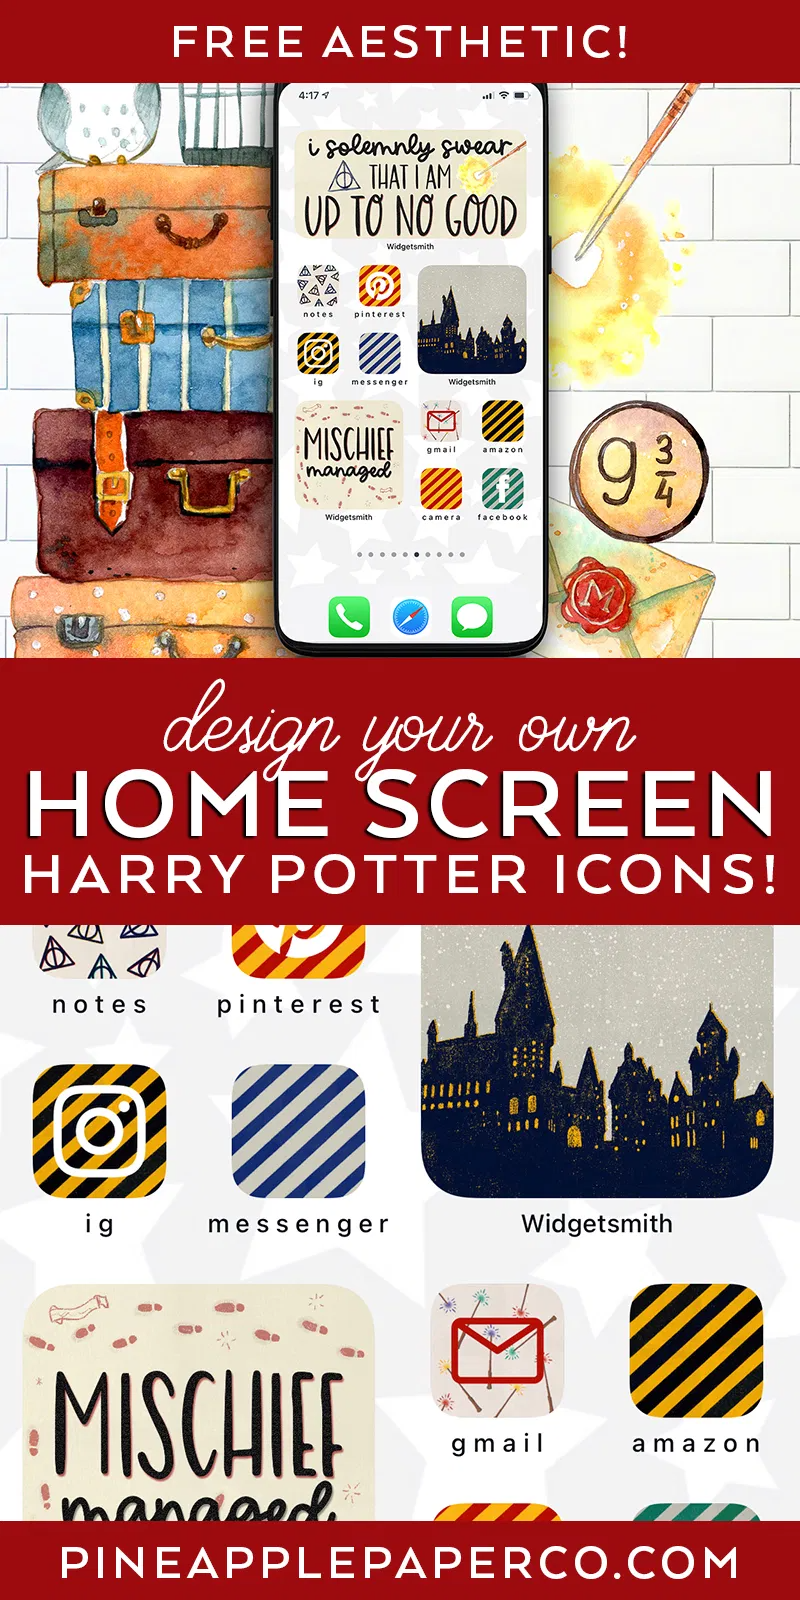 Free Harry Potter Aesthetic Widget And App Icons Harry Potter Iphone Harry Potter Icons Harry Potter Aesthetic